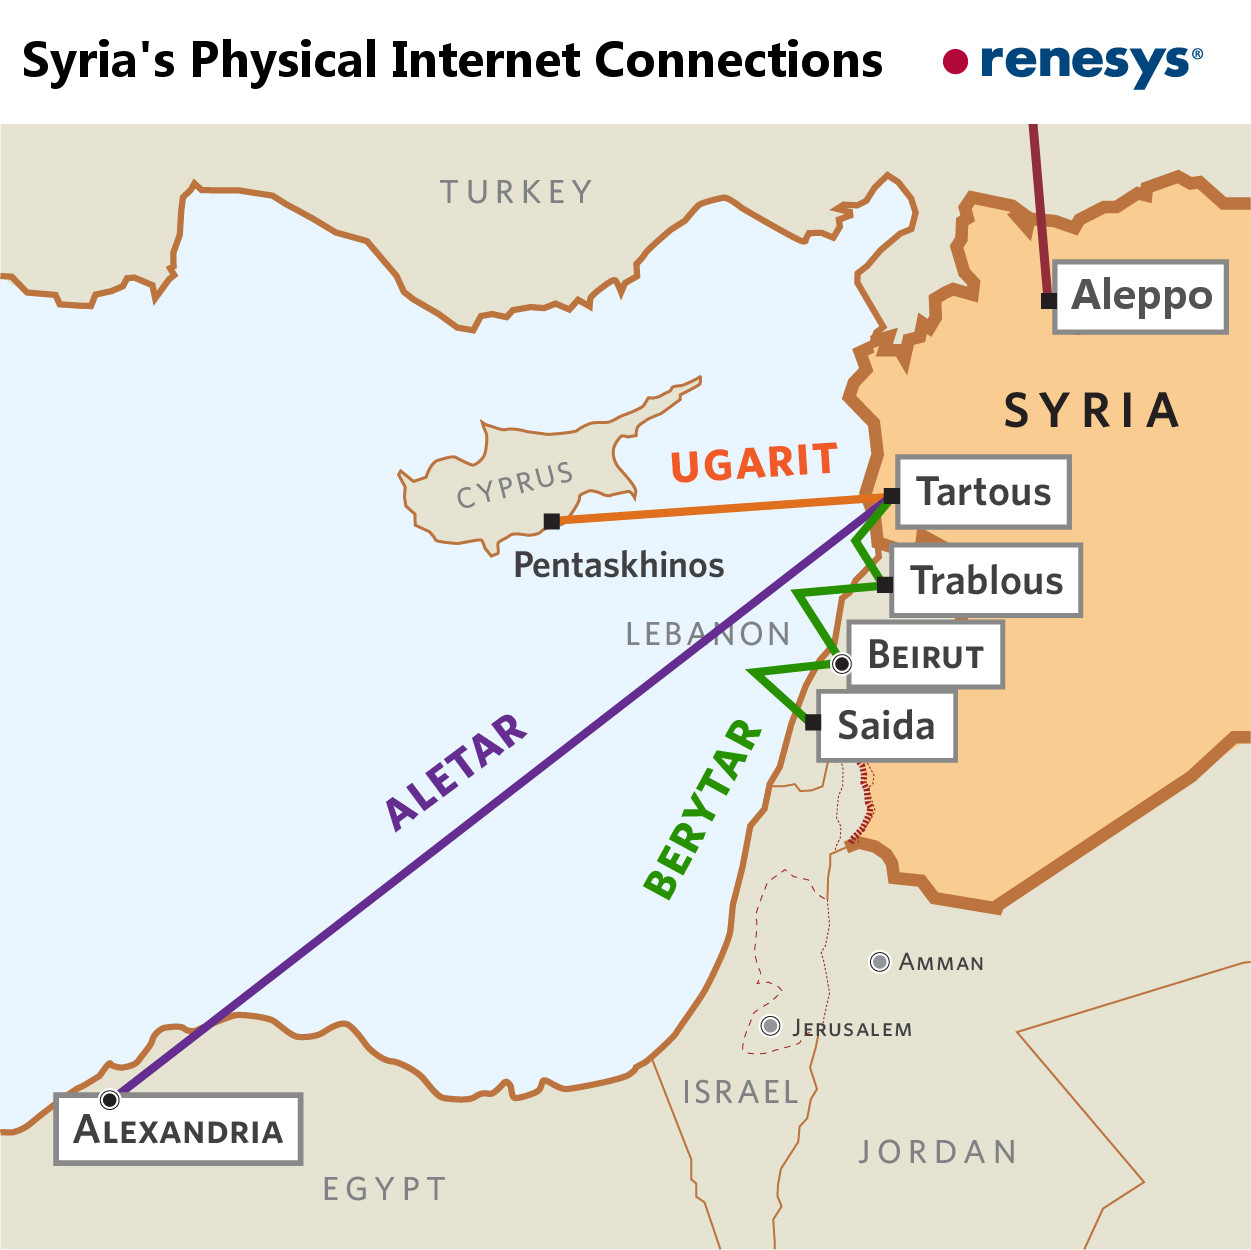 internet cable wiring diagram 1998 kawasaki bayou 300 40 maps that explain the syria s largest city dropped off in 2013